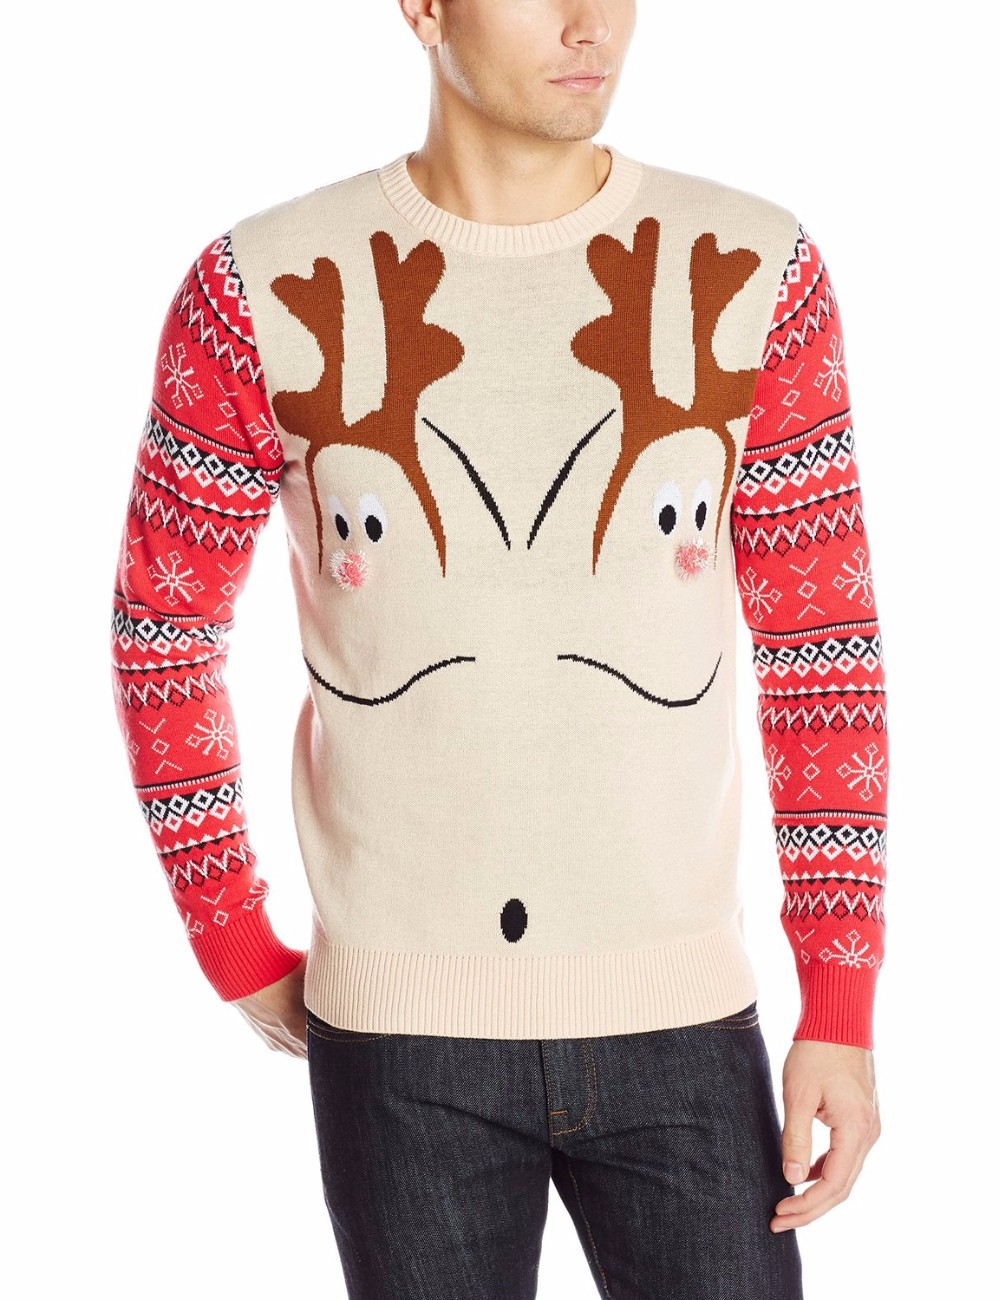 Men light kahki sweater double reindeer pattern christmas jumper men light kahki sweater double reindeer pattern christmas jumper knitting pattern s for adults bankloansurffo Image collections